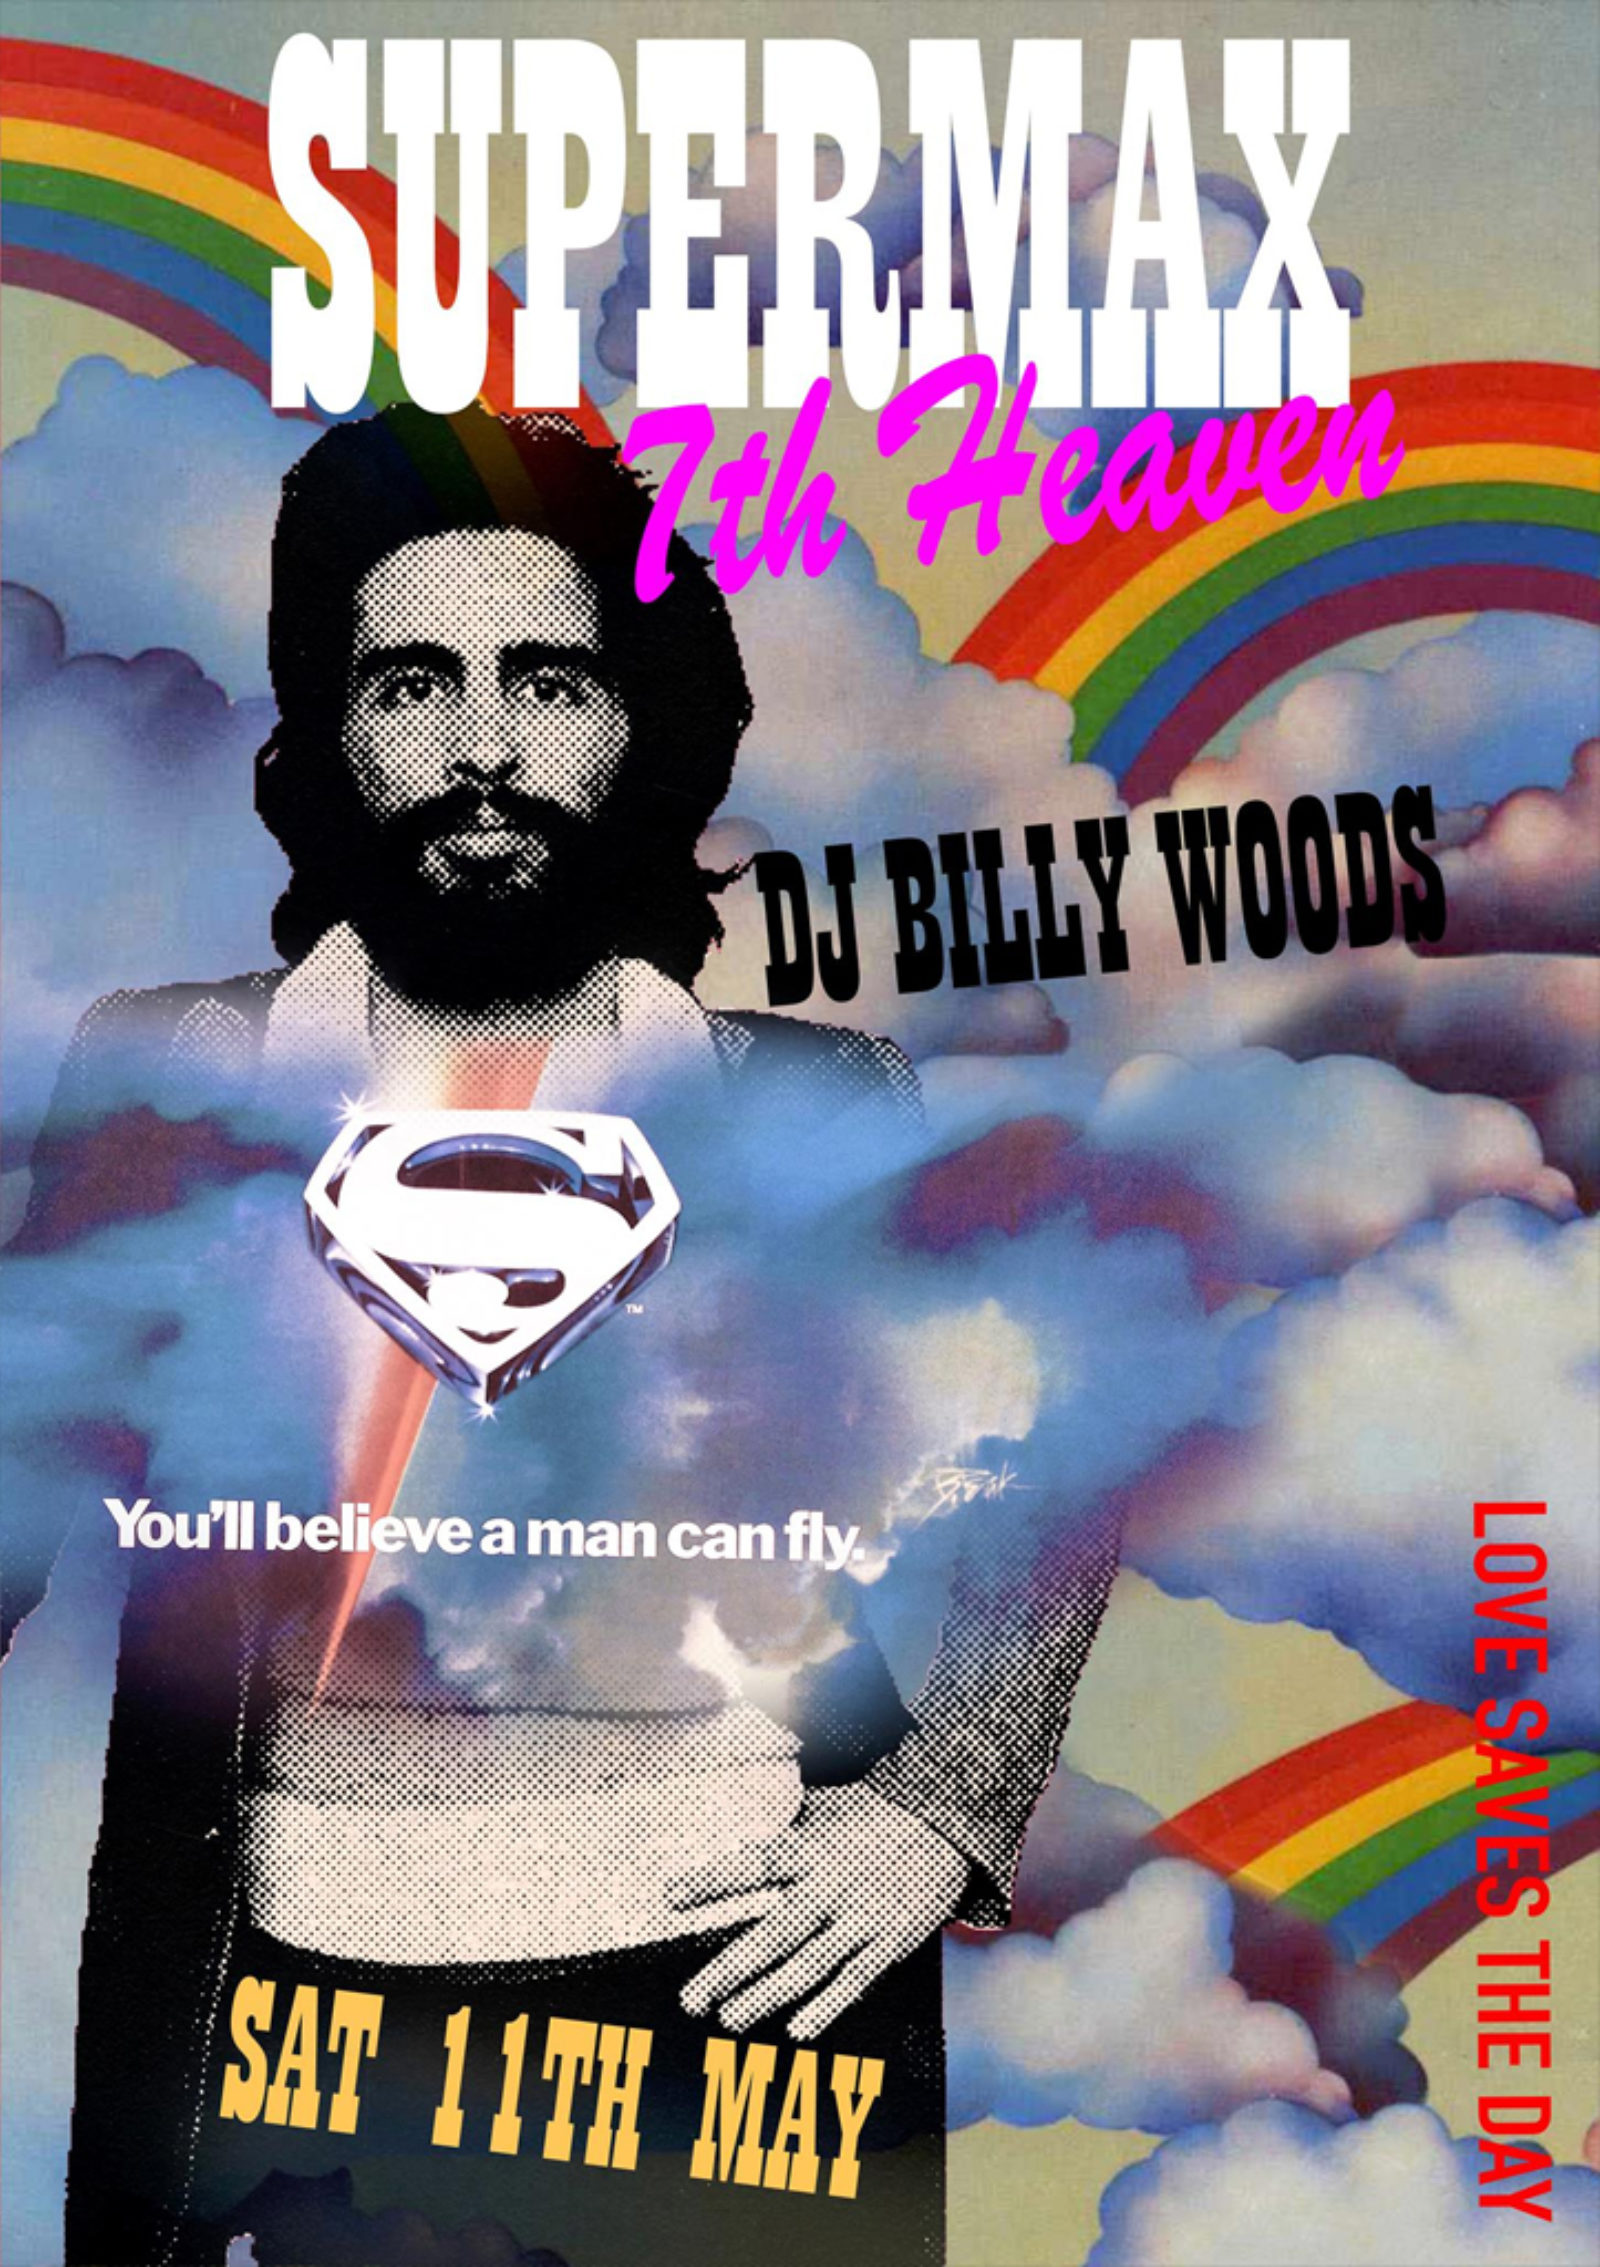 SUPERMAXX with DJ BILLY WOODS